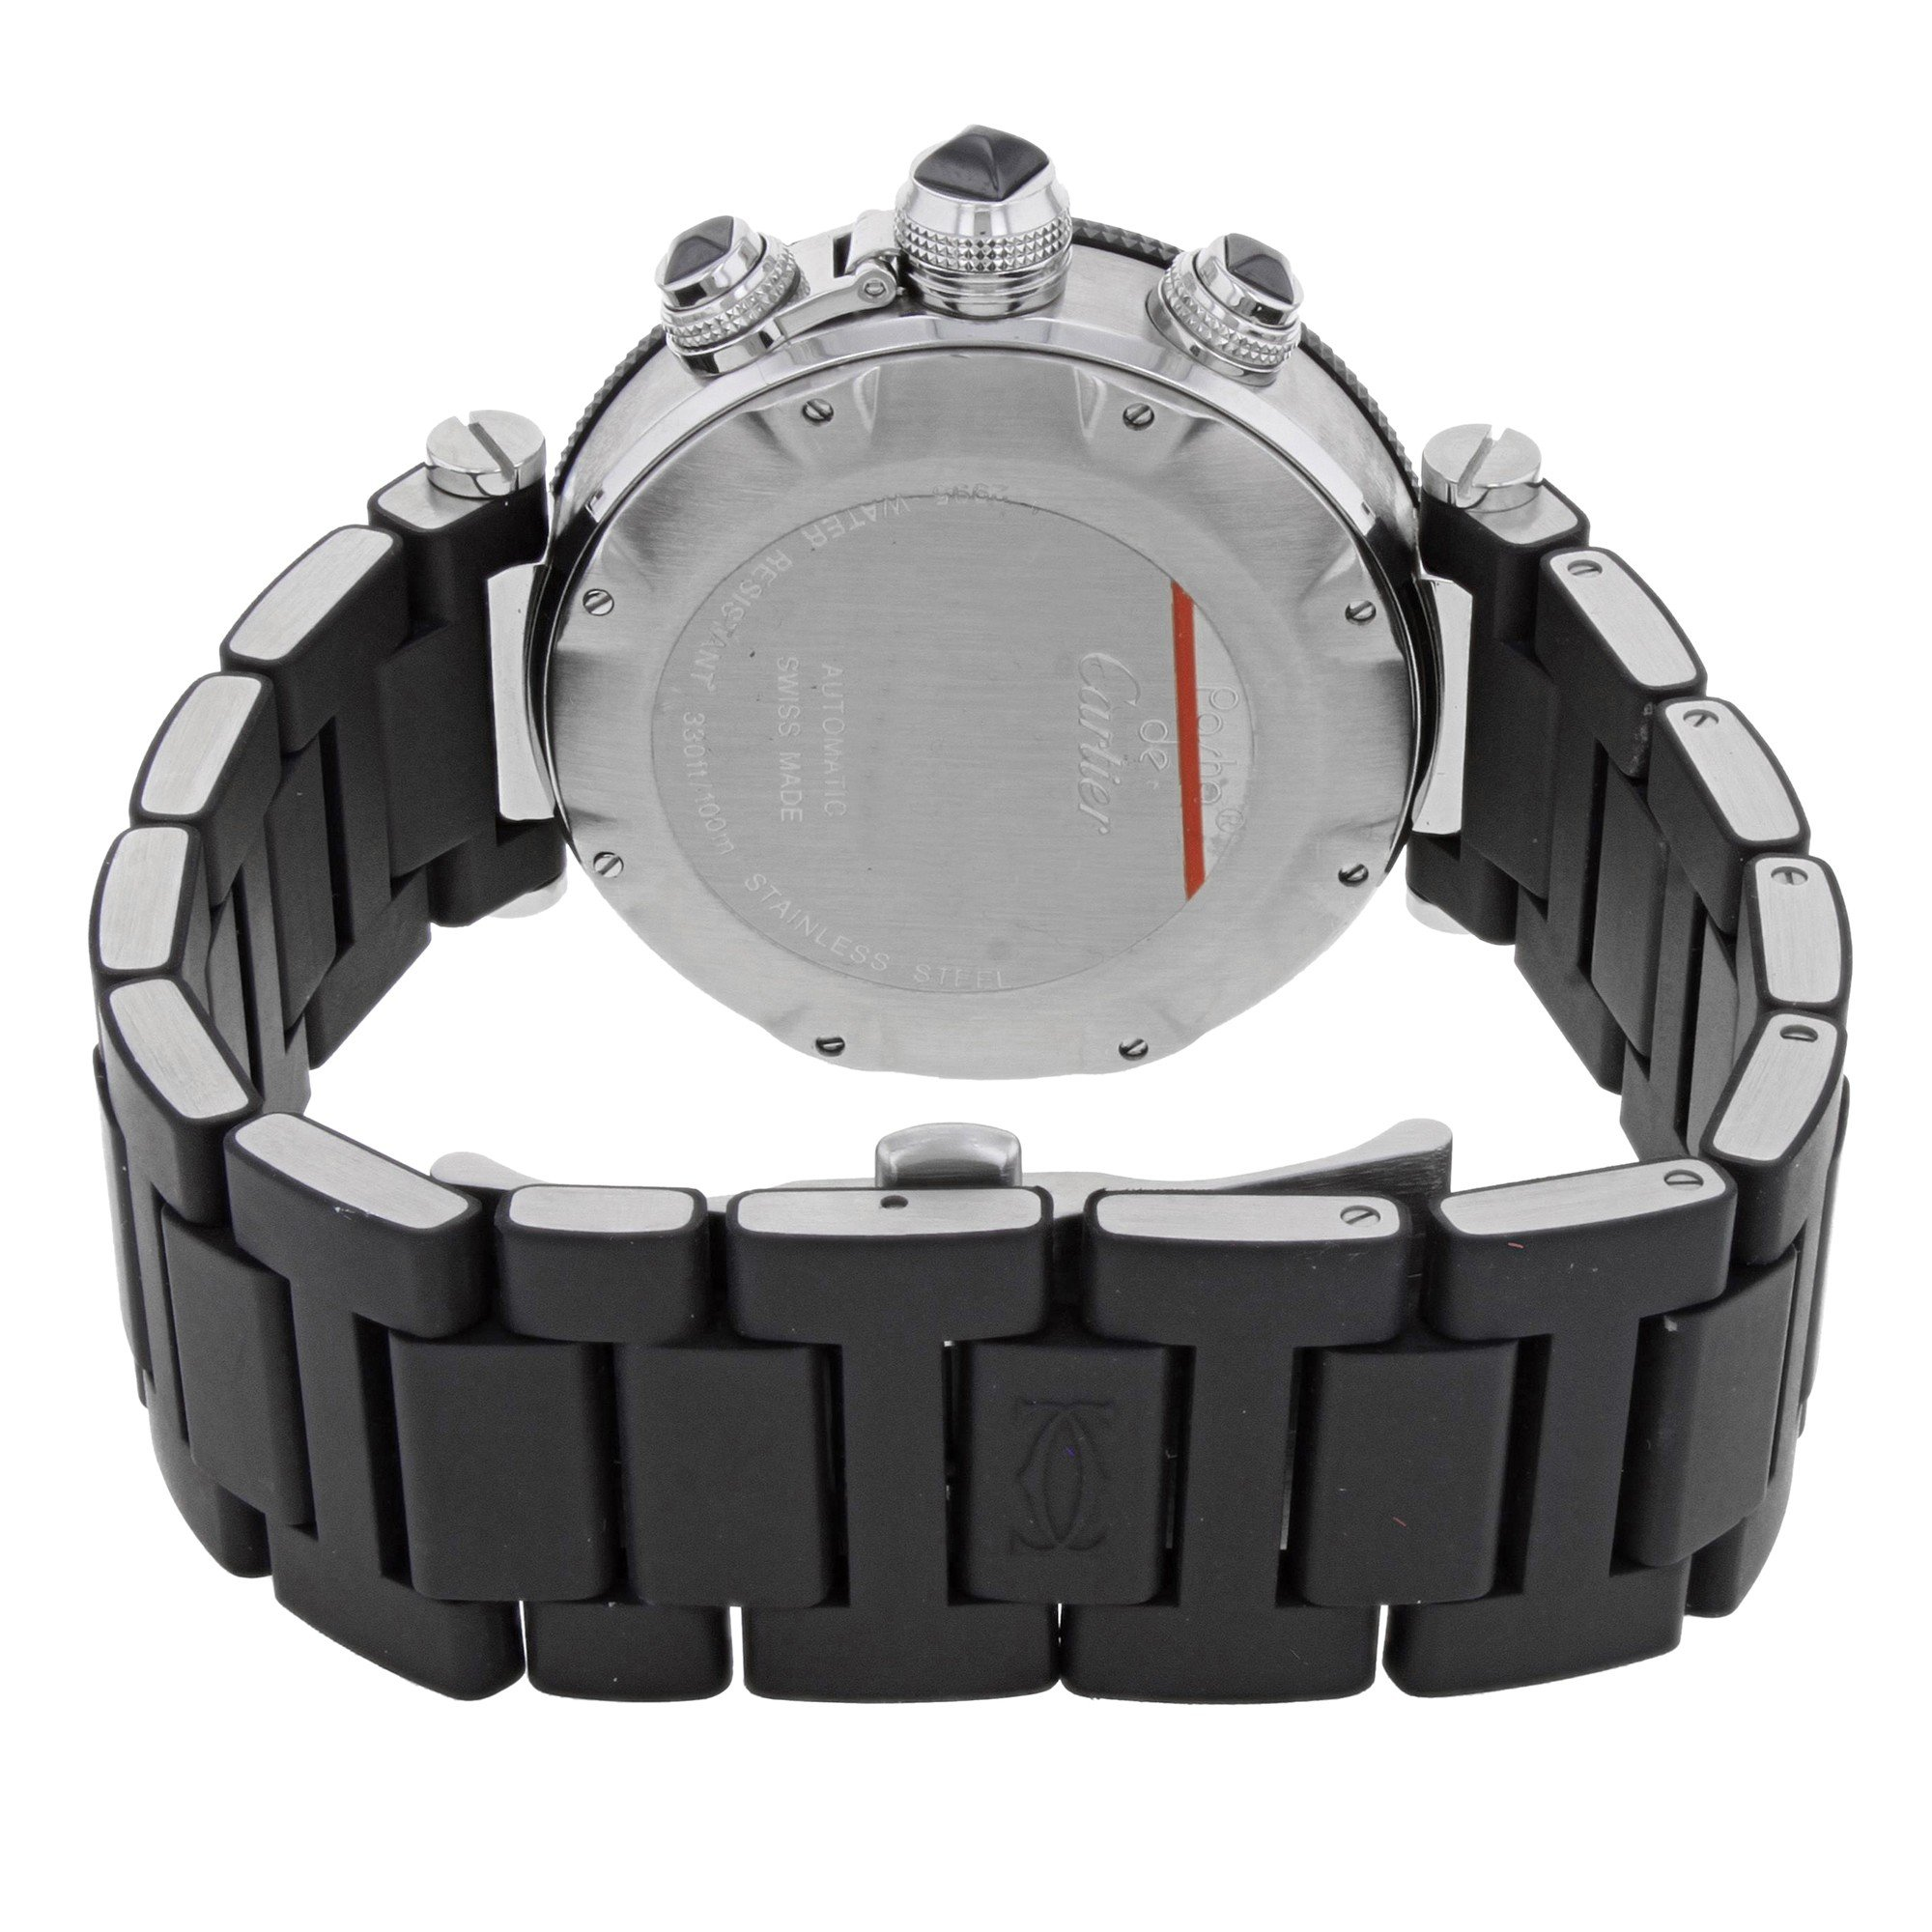 Cartier Pasha Seatimer W31088U2 Stainless Steel Automatic Men's Watch(Certified Pre-owned) by Cartier (Image #4)